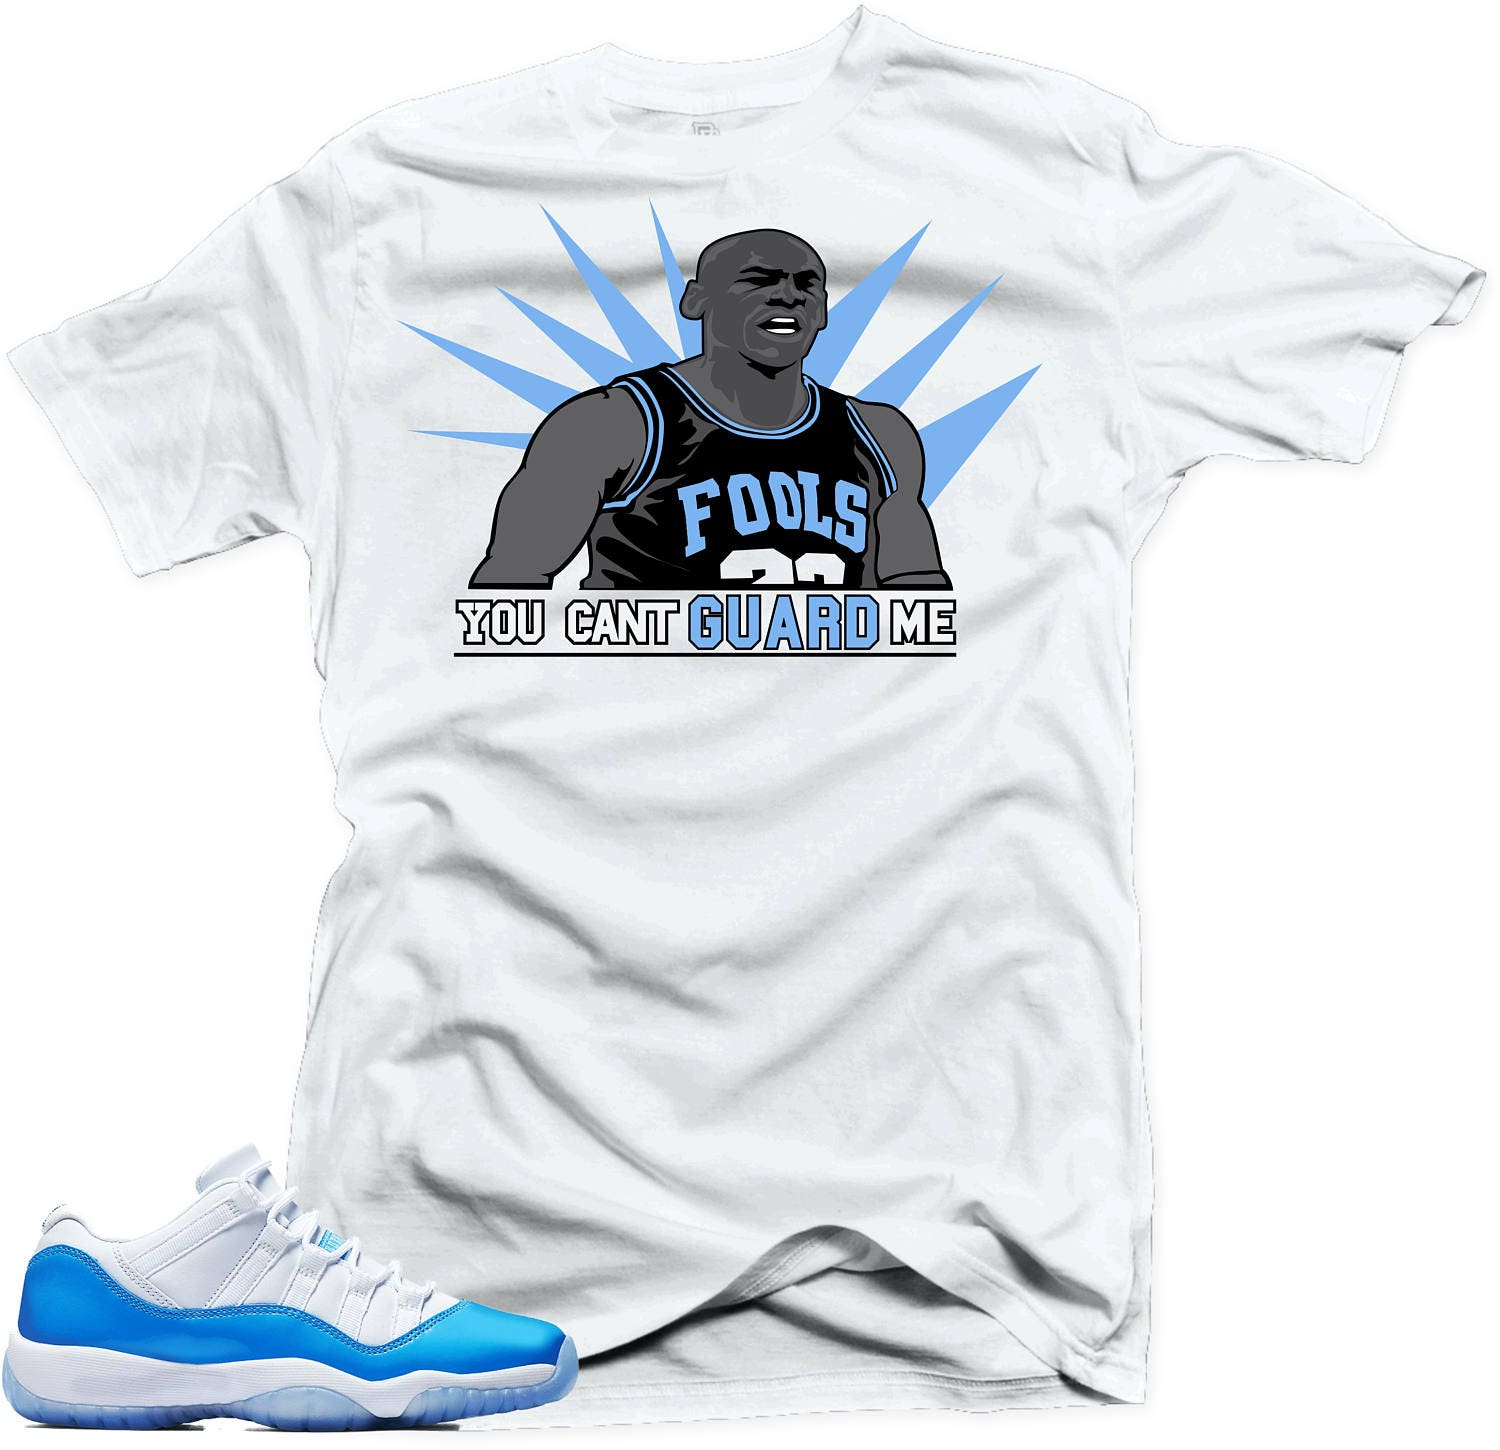 4a7c02f122fe8f Shirts To Match Jordan 11 Columbia – EDGE Engineering and Consulting ...